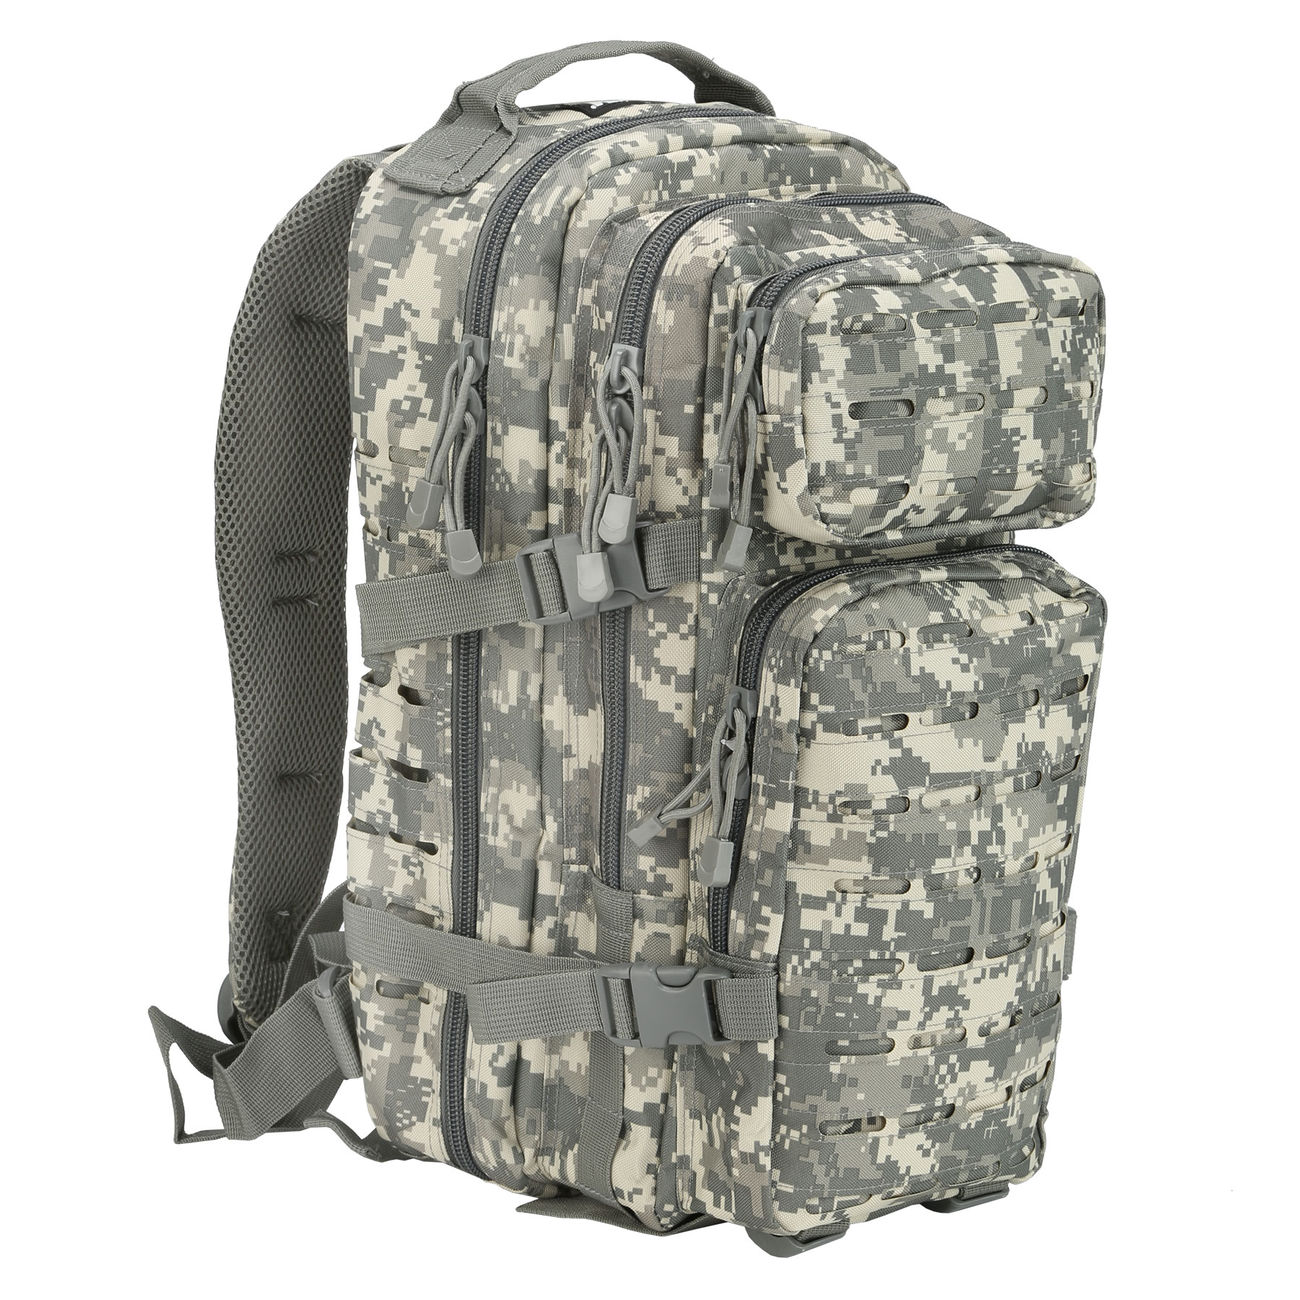 MFH Rucksack US Assault I Laser 30L AT-digital 0